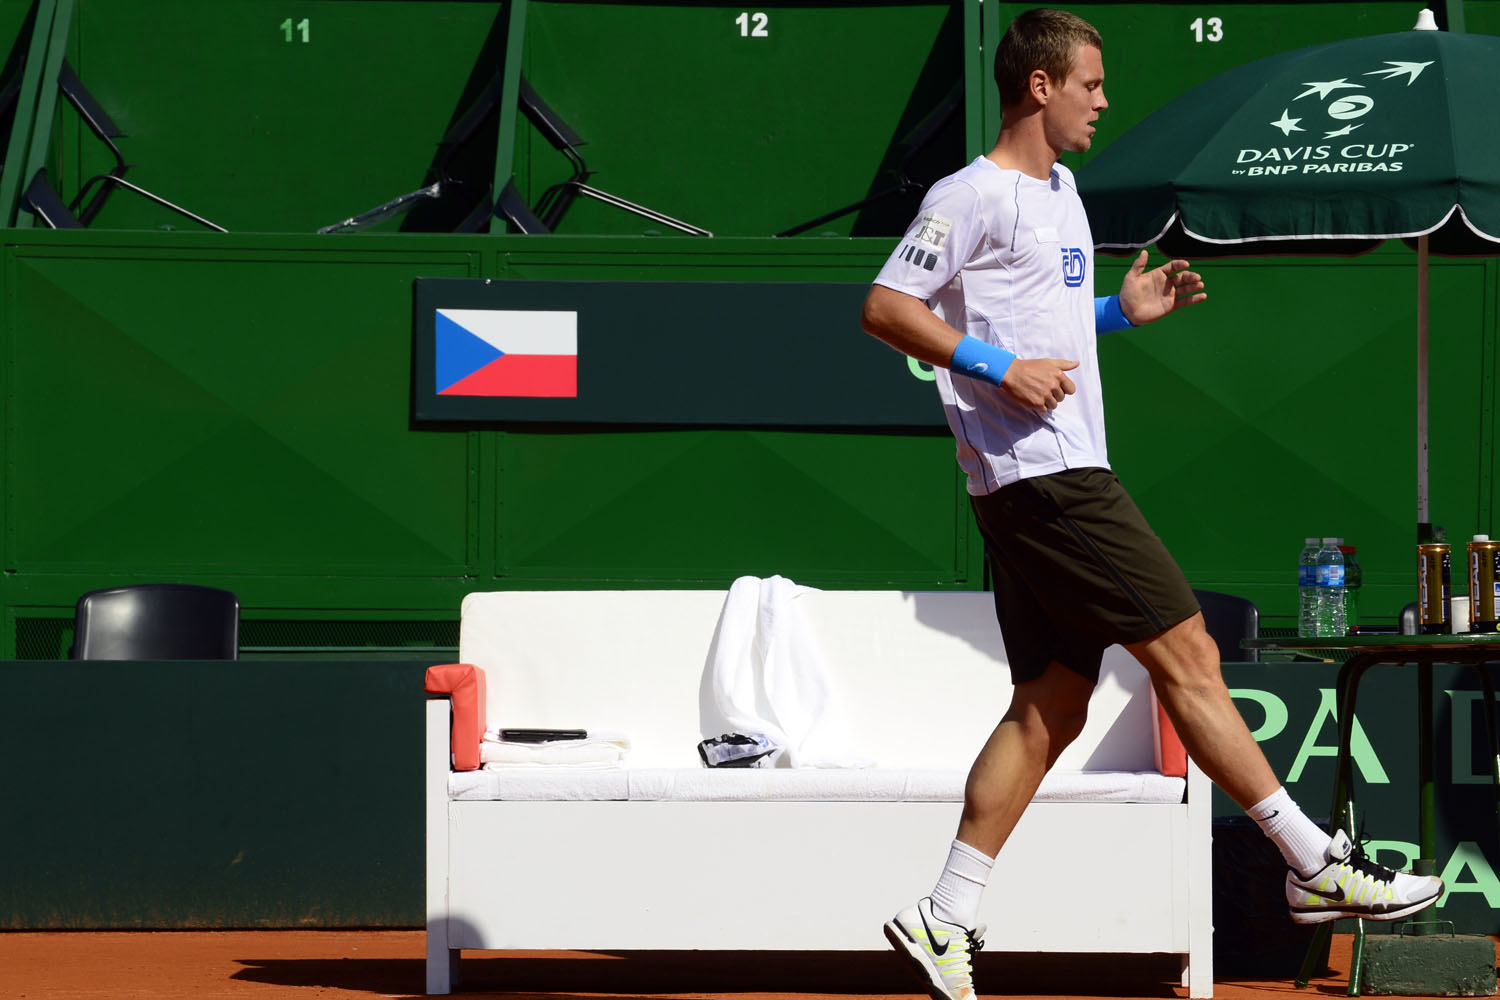 Tomas Berdych does some agility drills during a training session in the central court of the Mary Teran de Weiss stadium in Buenos Aires in September 2012.